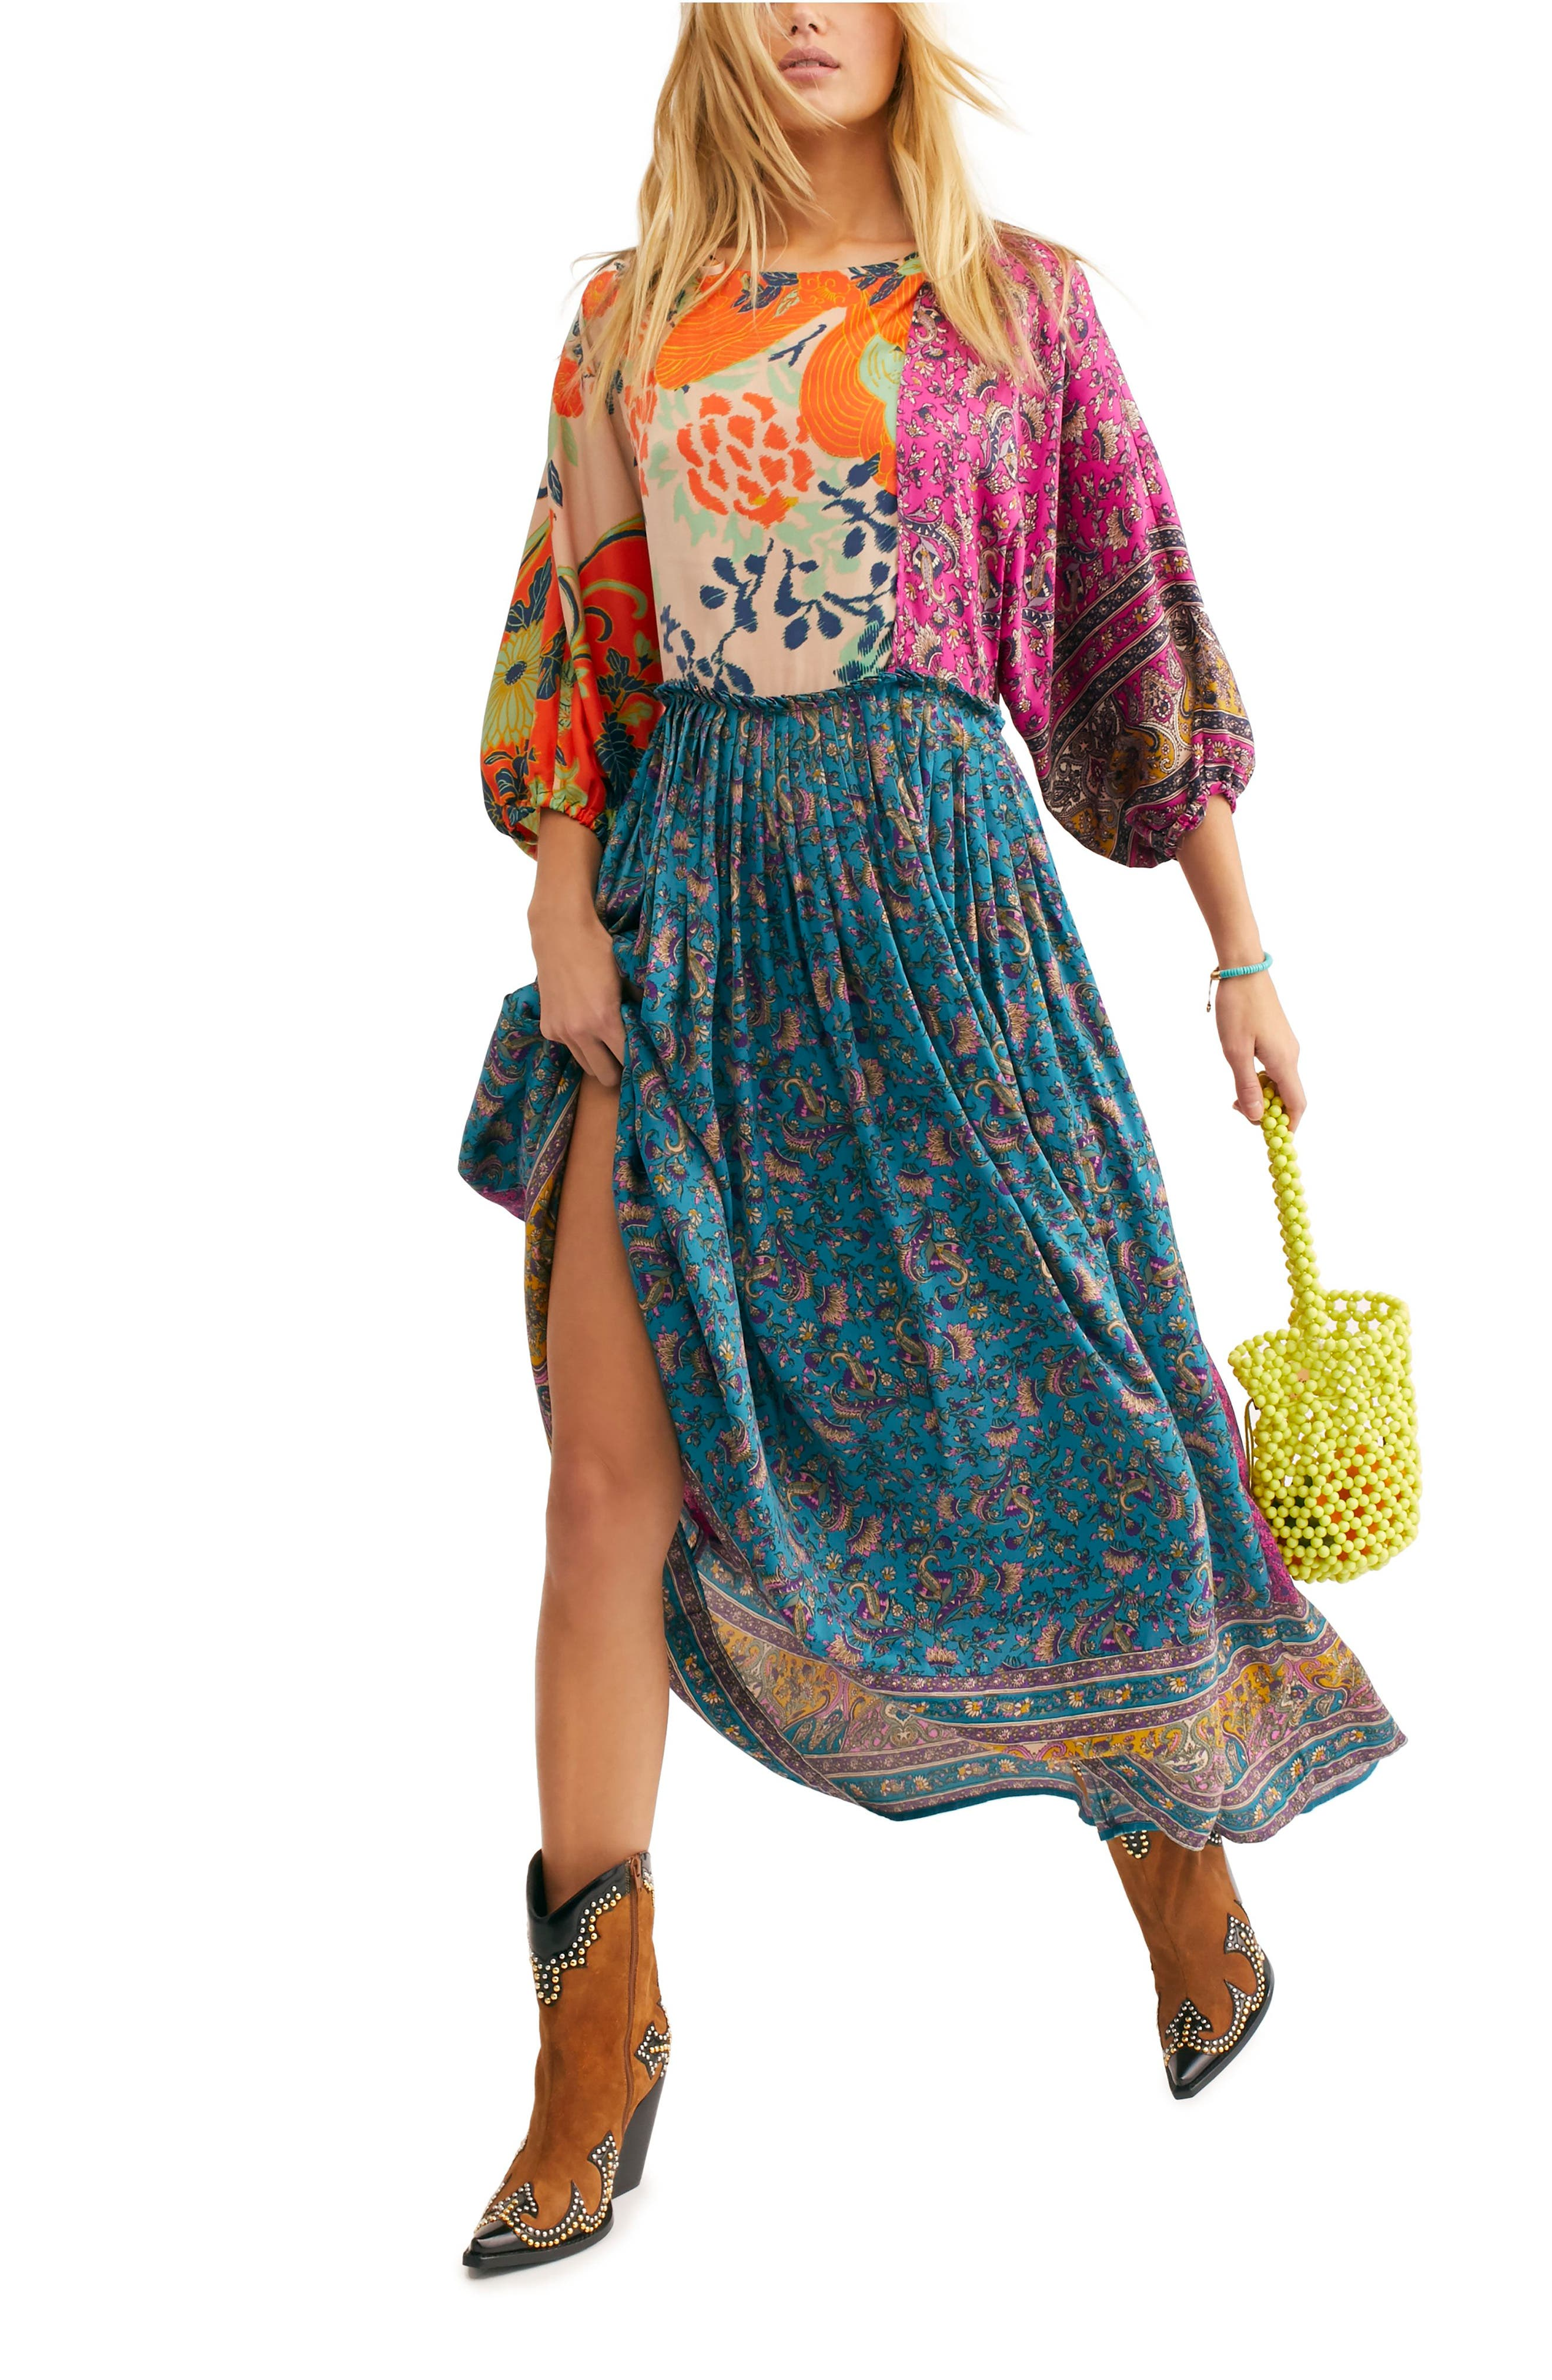 FREE PEOPLE, What You Want Maxi Dress, Alternate thumbnail 9, color, MULTI